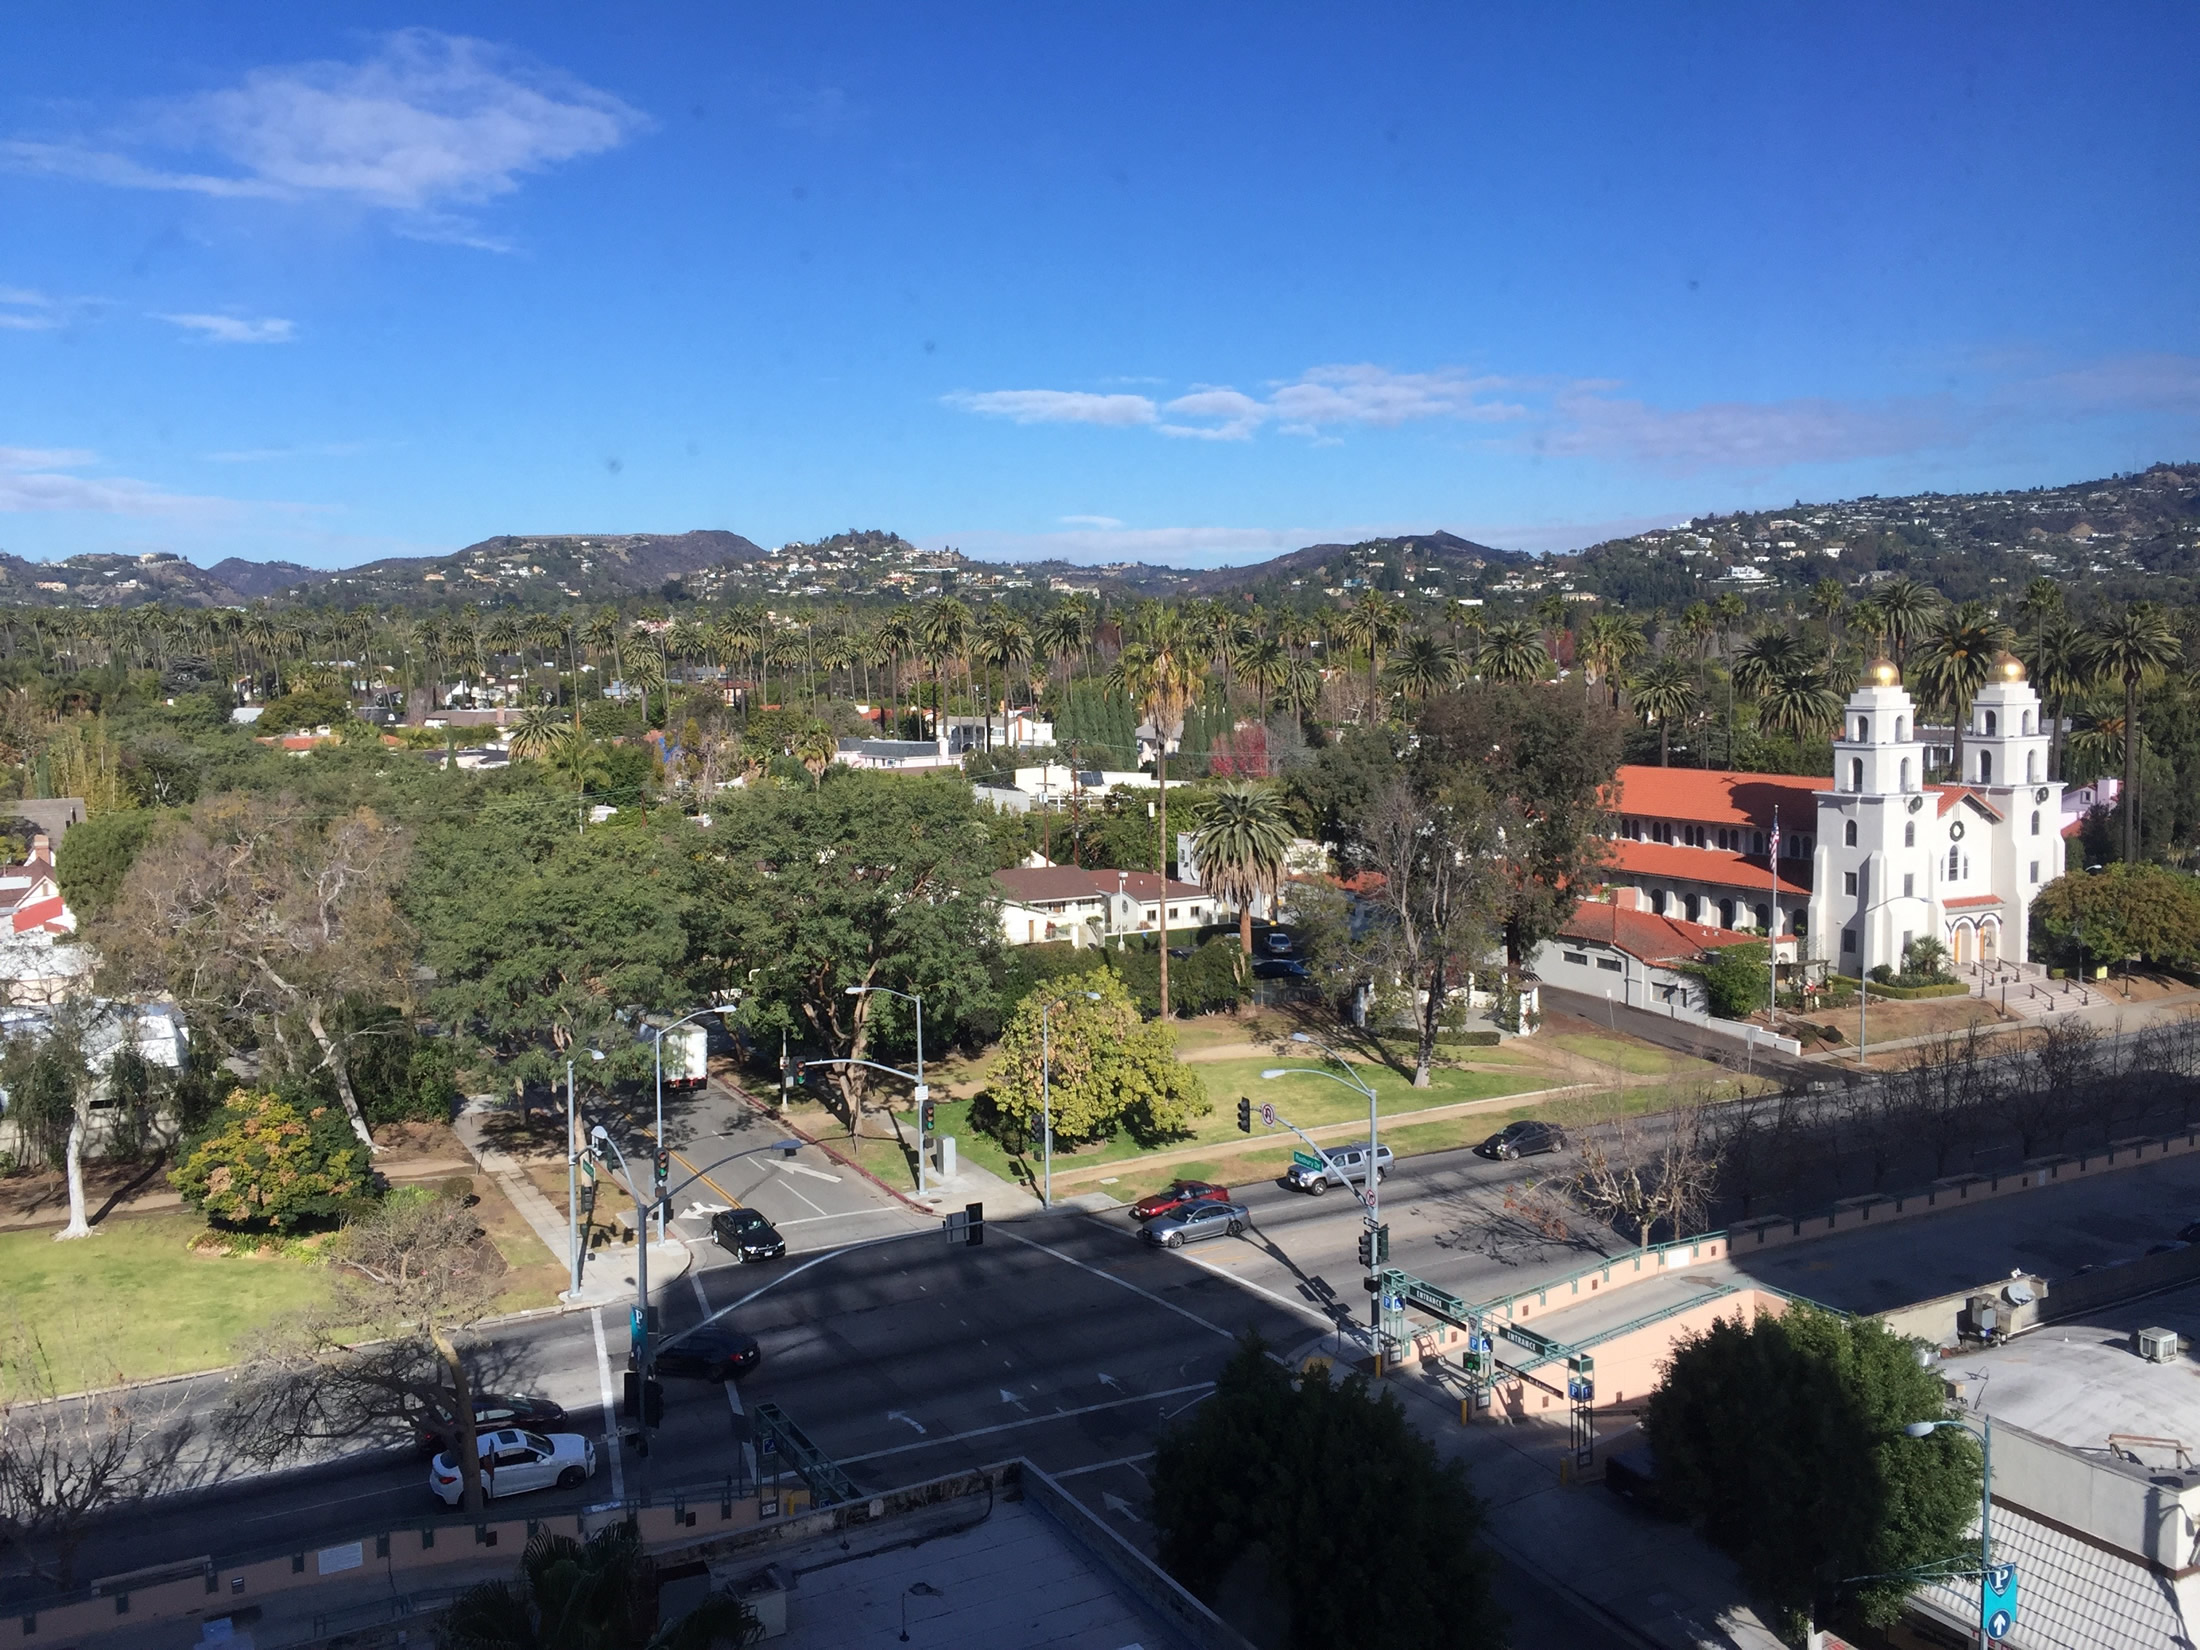 Image 16. Hills in the Santa Monica Range dotted with houses looking north from the window of a high rise building in Beverly Hills, California, USA. Photo by author, 4 January 2016.